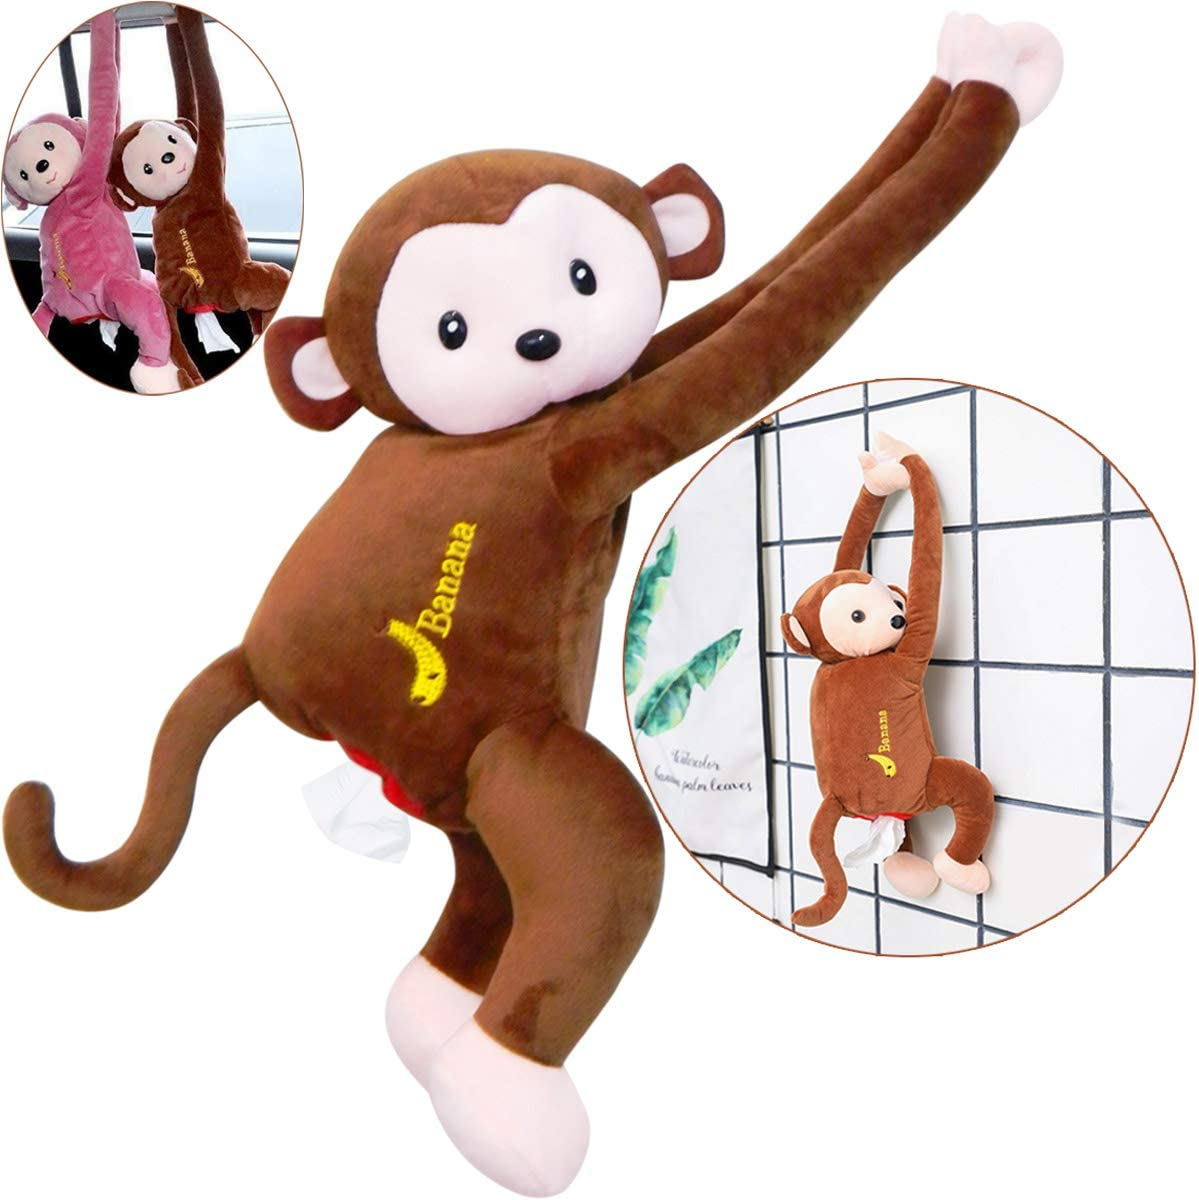 Quality Yes QY Brown Color Cotton Filled Cute Toy Cartoon Monkey Tissue Box Paper Holder Case